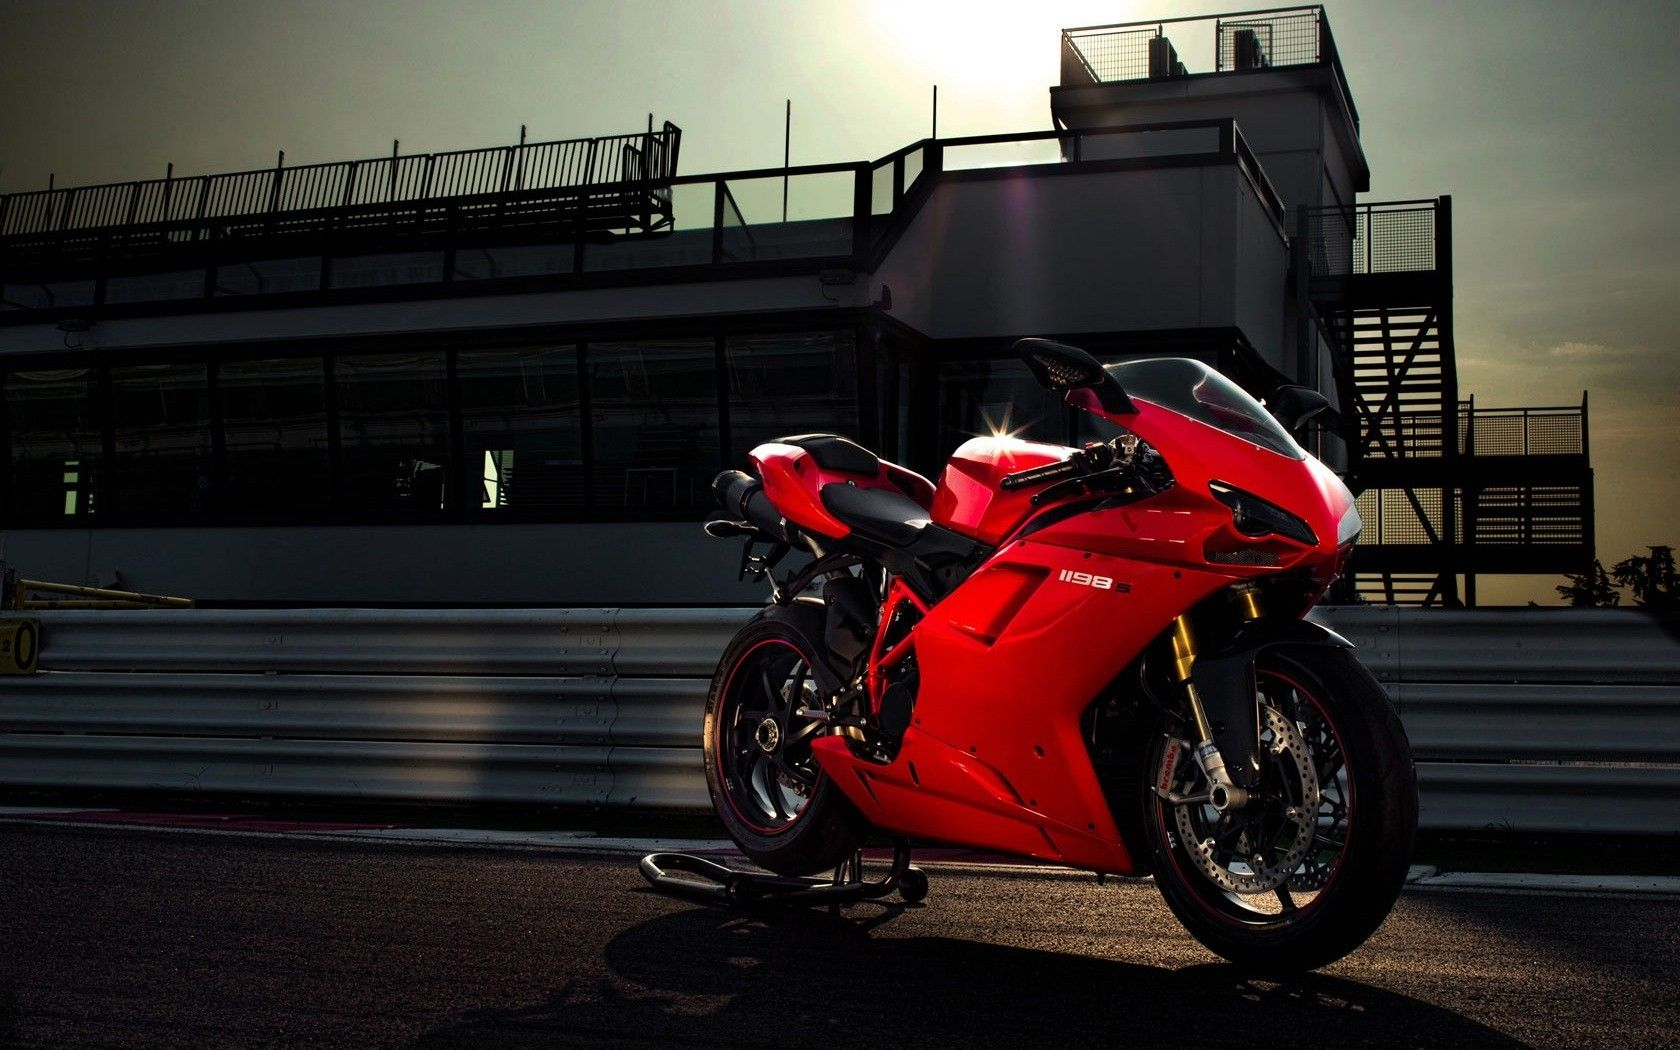 ducati 1198s bike hd wallpaper | Motorcycles HD Wallpaper ...